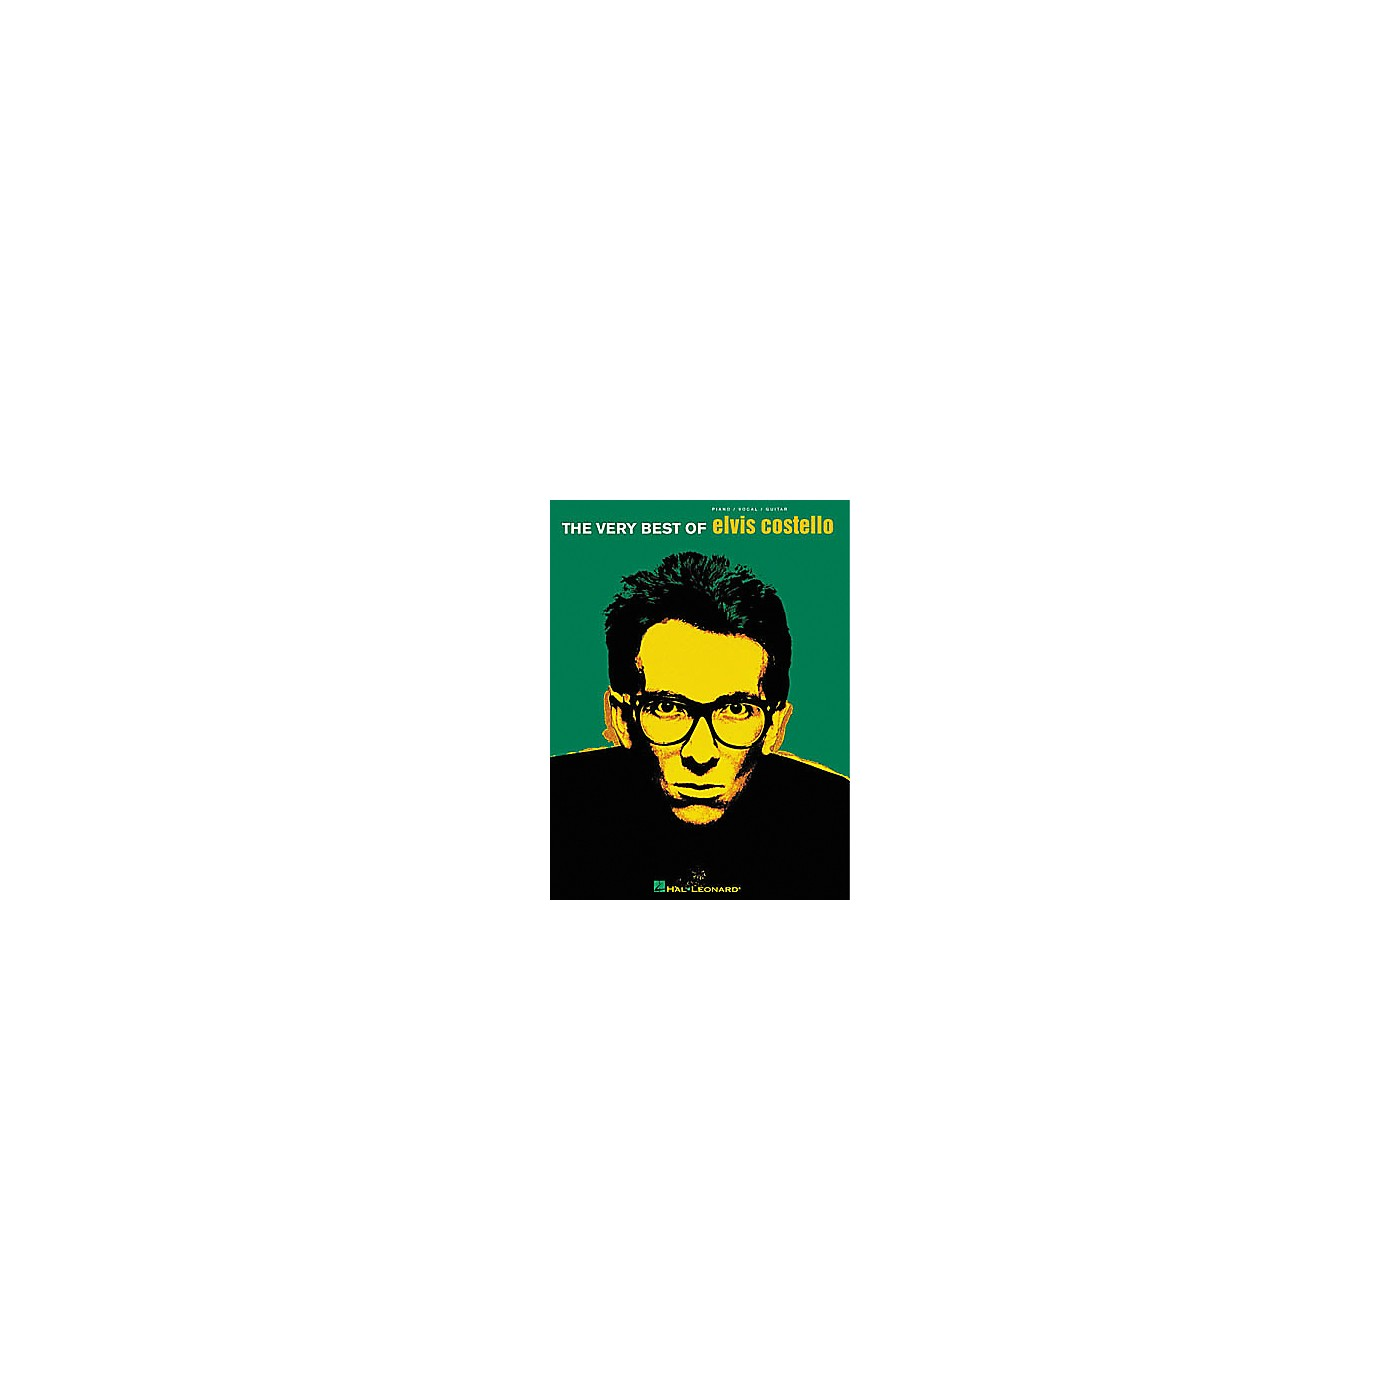 Hal Leonard The Very Best of Elvis Costello Songbook thumbnail